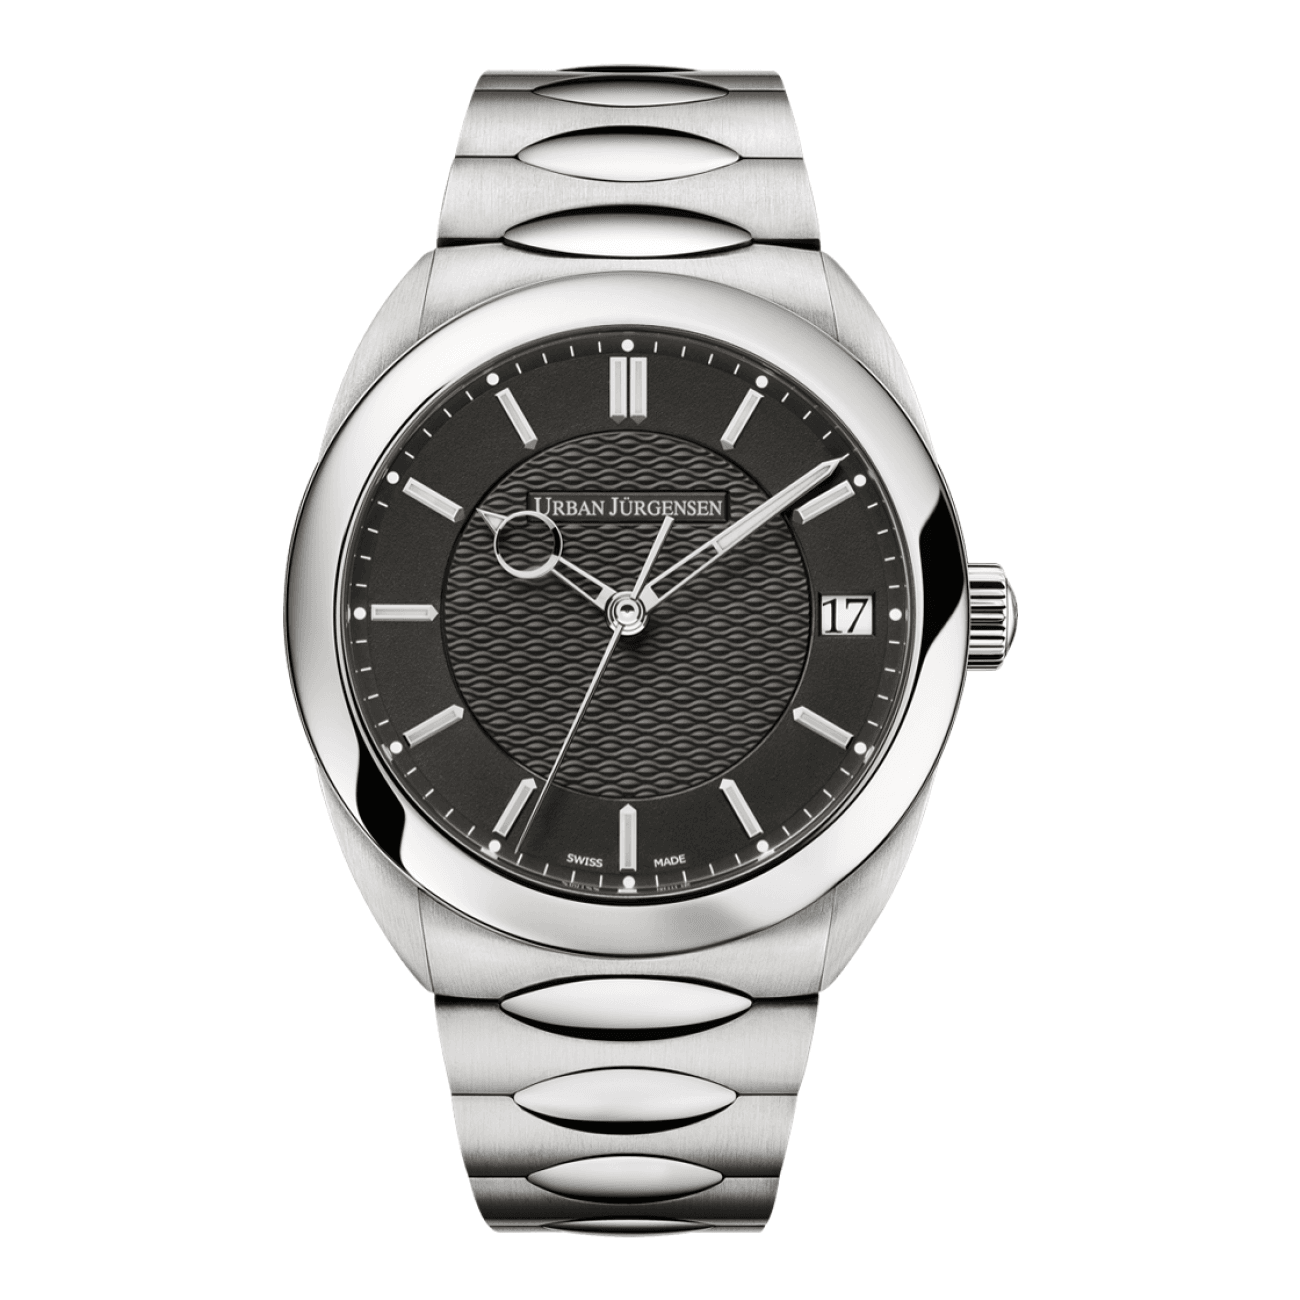 Urban Jurgensen Watches - Urban Jurgensen 5241 | Manfredi Jewels